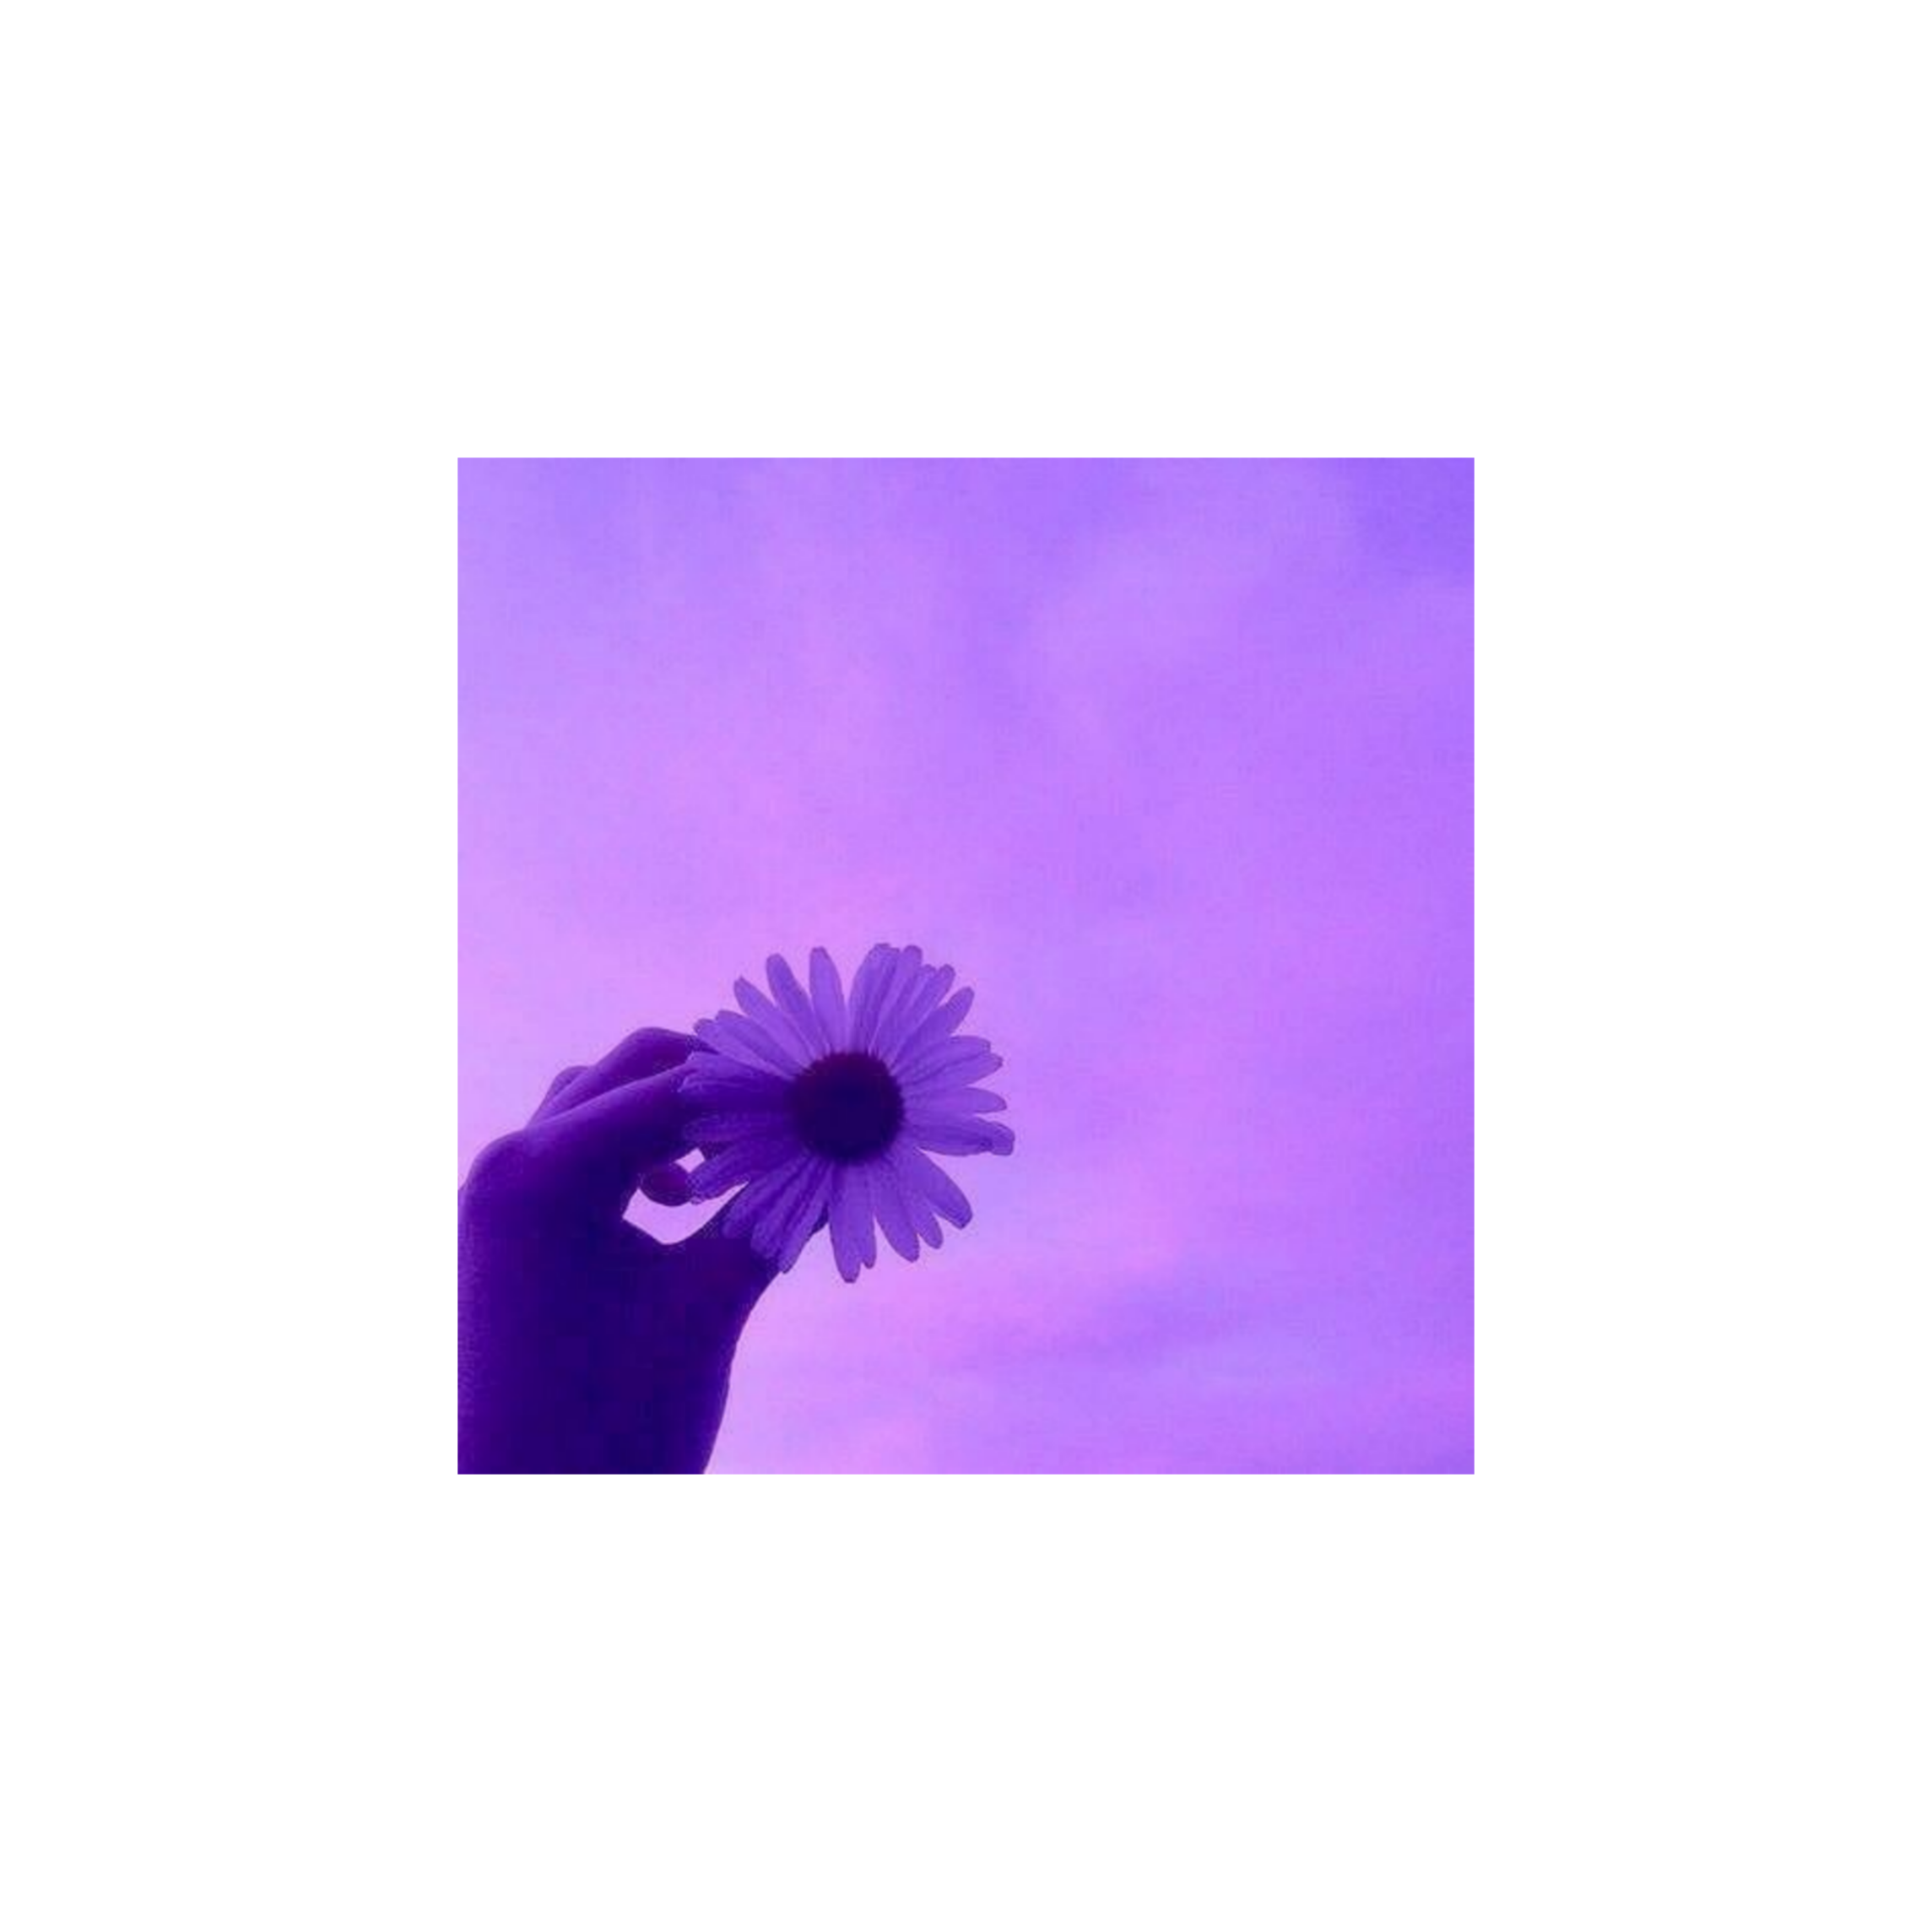 Pink and purple aesthetic